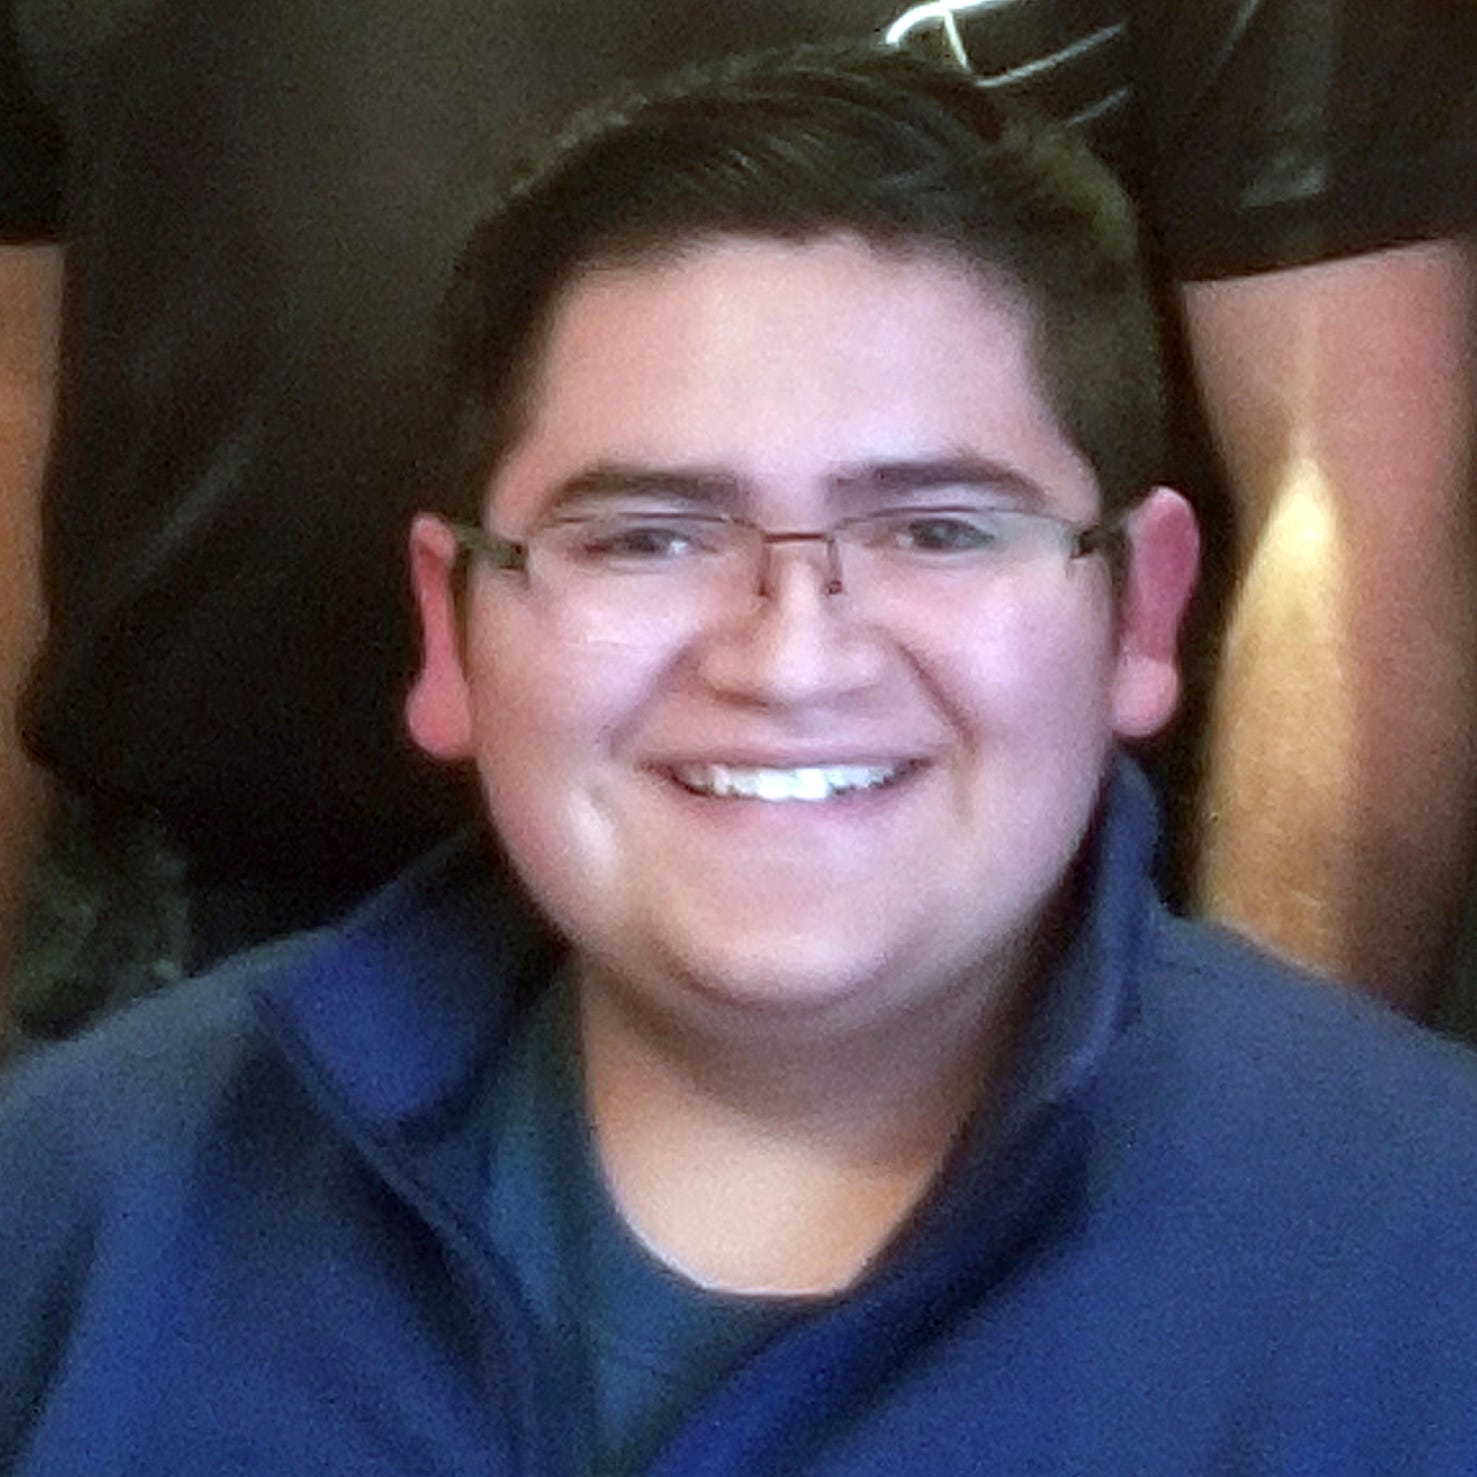 Will Donald Trump honor Denver STEM School shooting hero Kendrick Castillo?